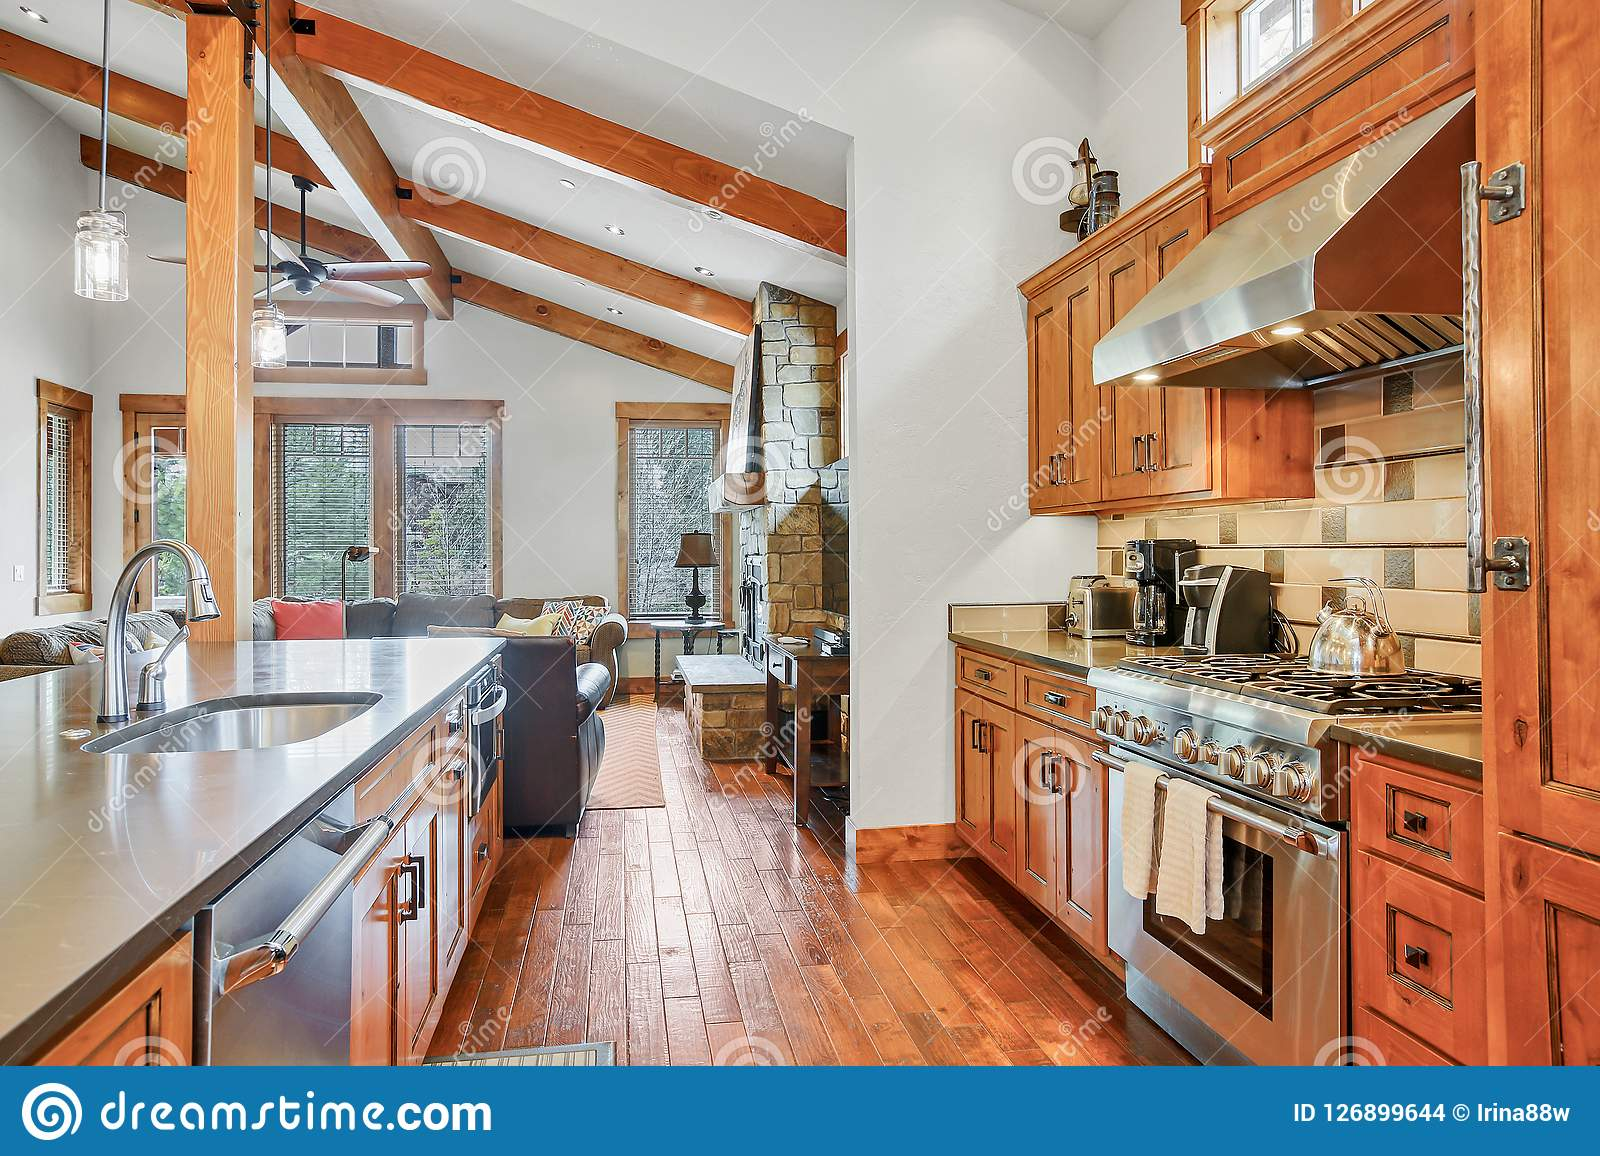 Open Kitchen Design With Vaulted Ceiling And Hardwood Floor Stock Photo Image Of Ceiling Stove 126899644